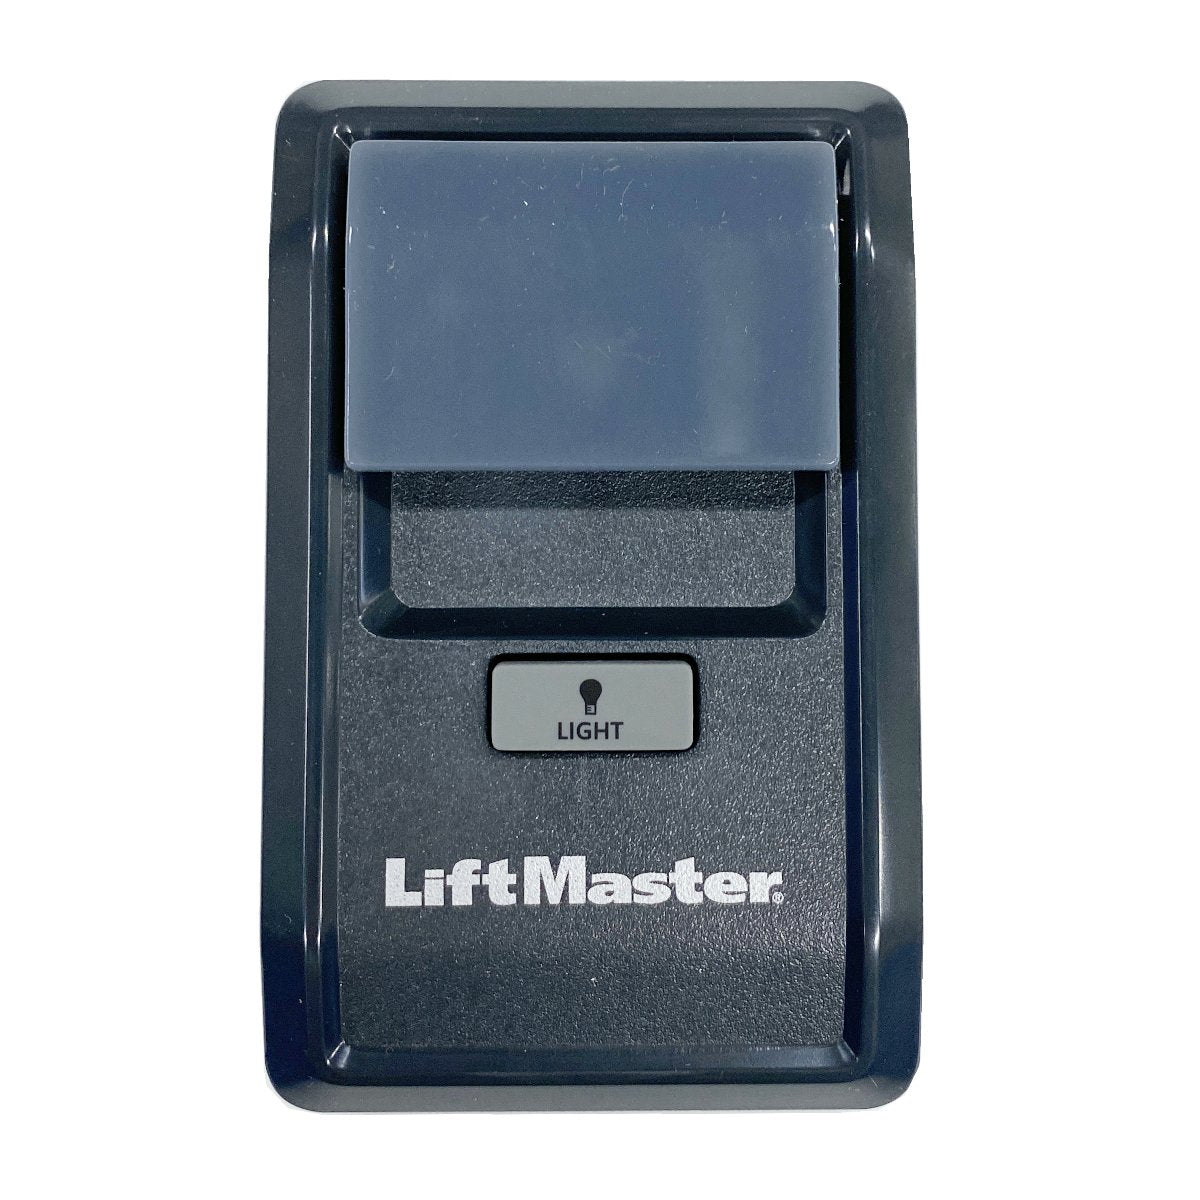 Liftmaster 882lm